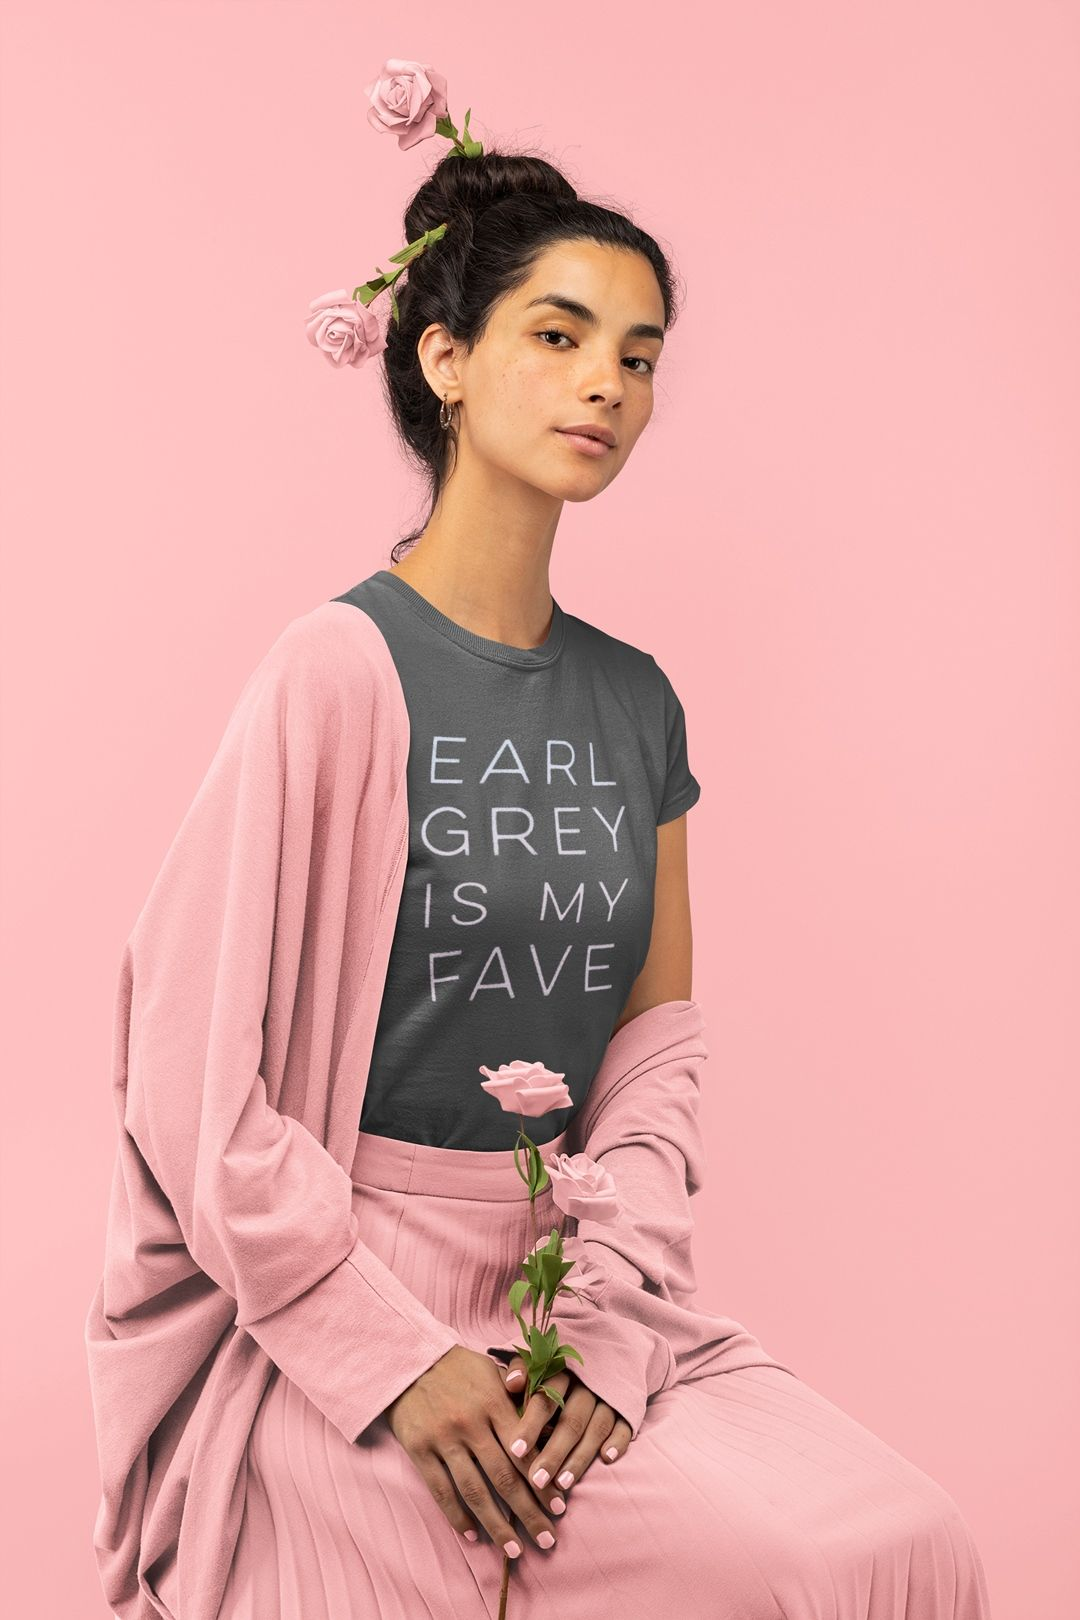 Gallery Tea Time / Earl Grey is My Fave / Shirt is free HD wallpaper.